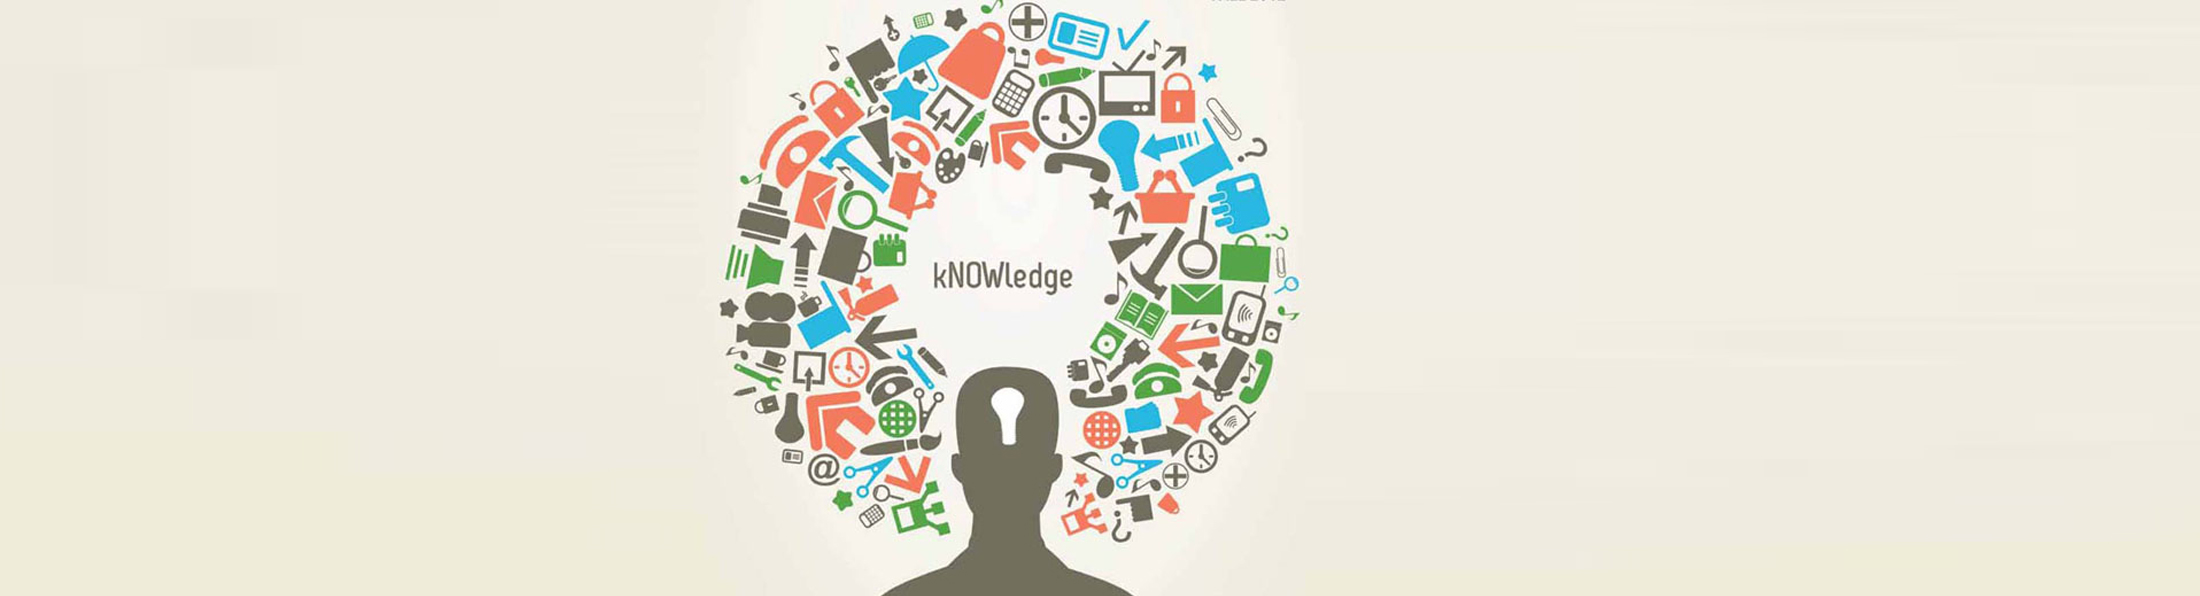 Metamorphose information to knowledge when e-learning